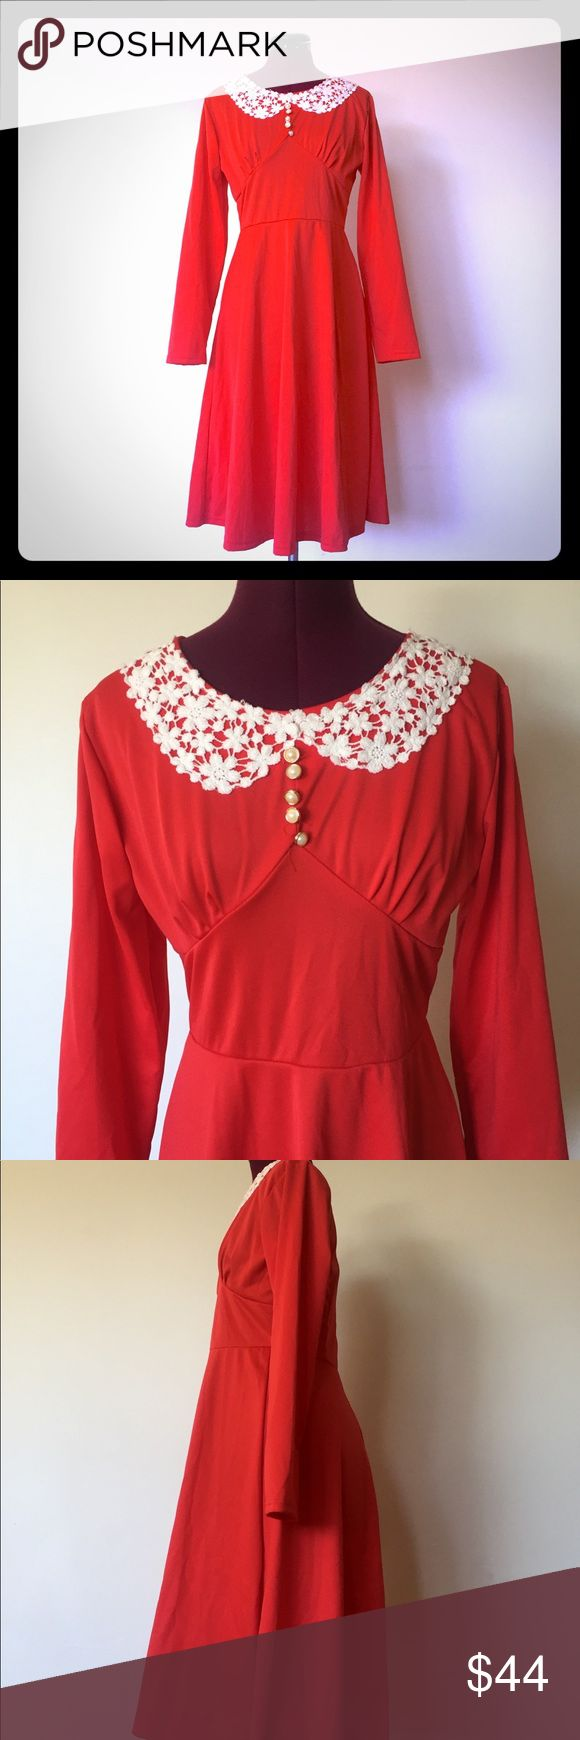 "Vintage 70s Red Dress Whit Lace Mid Length 8 M L 70's bright red dress with a cotton white lace faux Peter Pan collar and pearl button details. It has a wide paneled empire waistline and wide skirt. It zips up the back with a nylon zipper.     Material: polyester, cotton lace  Color/print: Red  Maker: Unmarked   Era: 70's  Size: M or L    Measurements: Sleeve-23"" Bust-38"" - 40""  Waist-30"" to 36"" Hips: 50""  Length-40""    Condition: very good Vintage Dresses Midi"